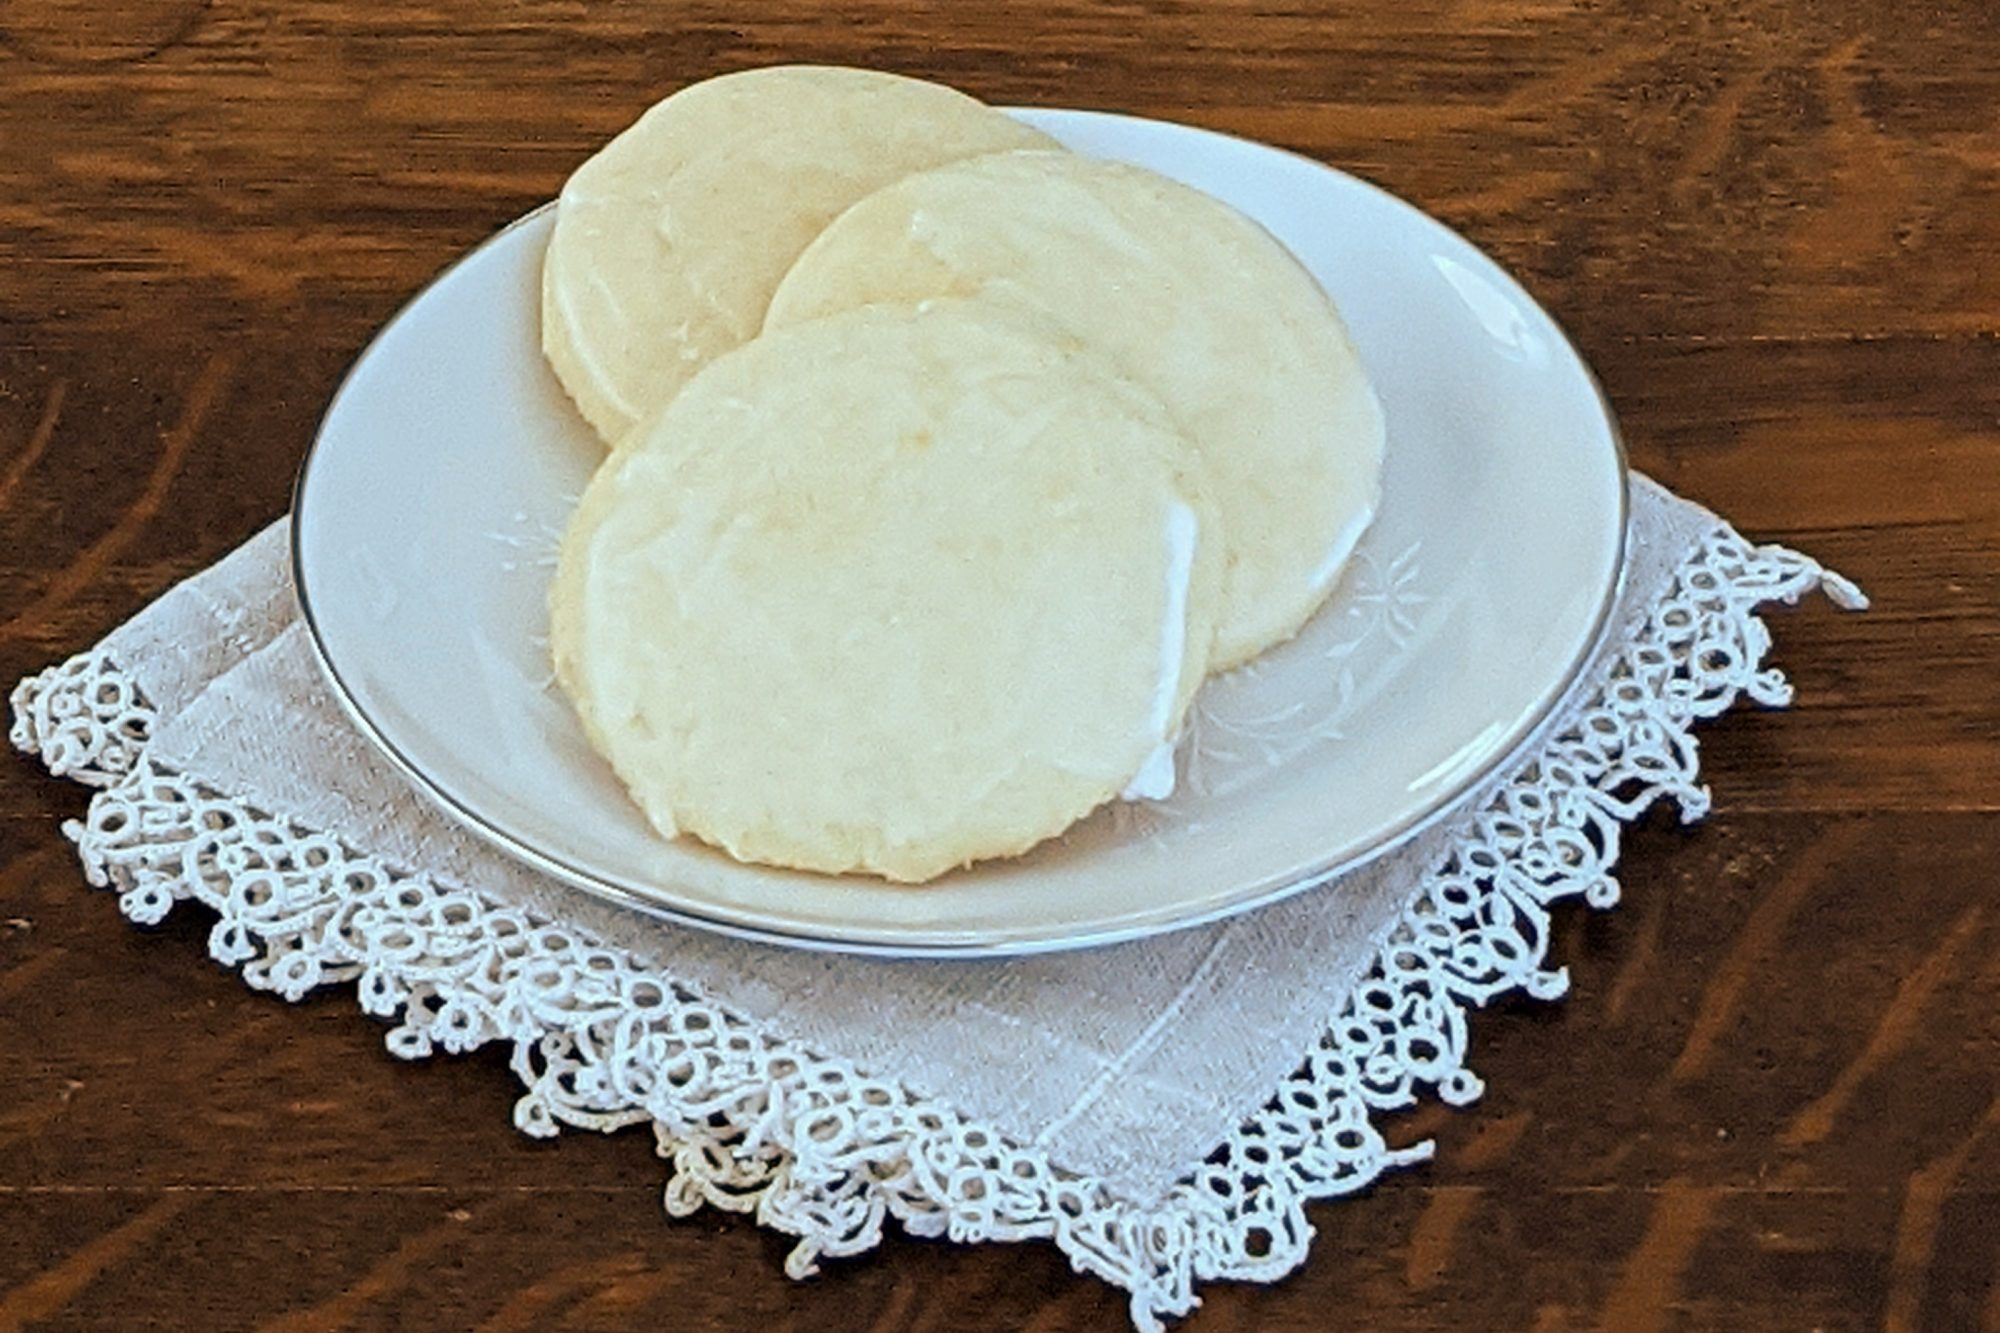 Great-Grandma's Sour Cream Drop Cookies baked as glazed cut-out sugar cookies